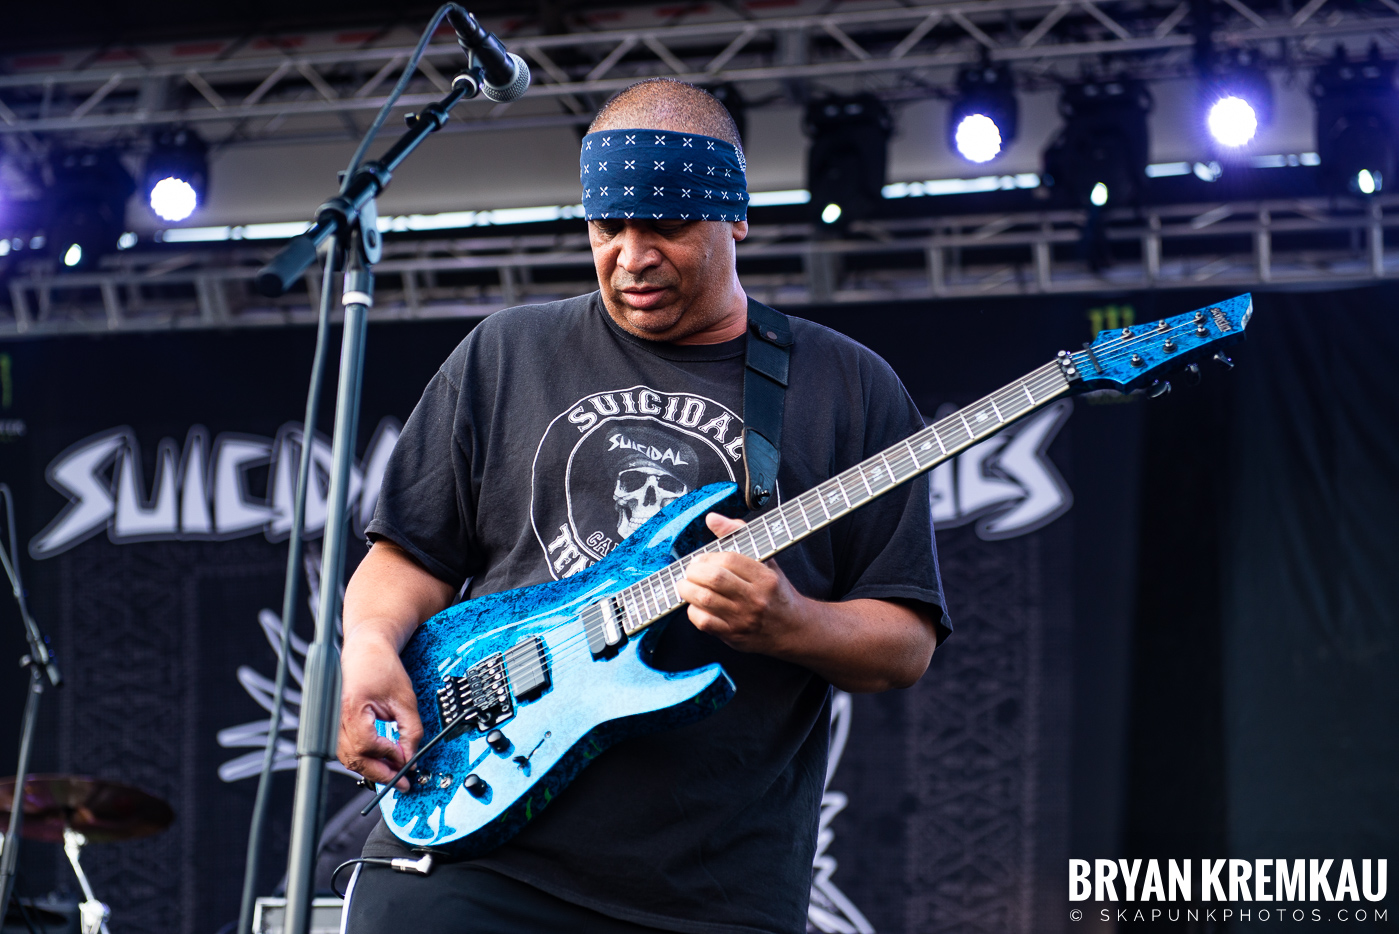 Suicidal Tendencies @ The Bash Music & Craft Beer Festival, Old Bridge Township Raceway Park, Englishtown, NJ - 6.2.19 (52)